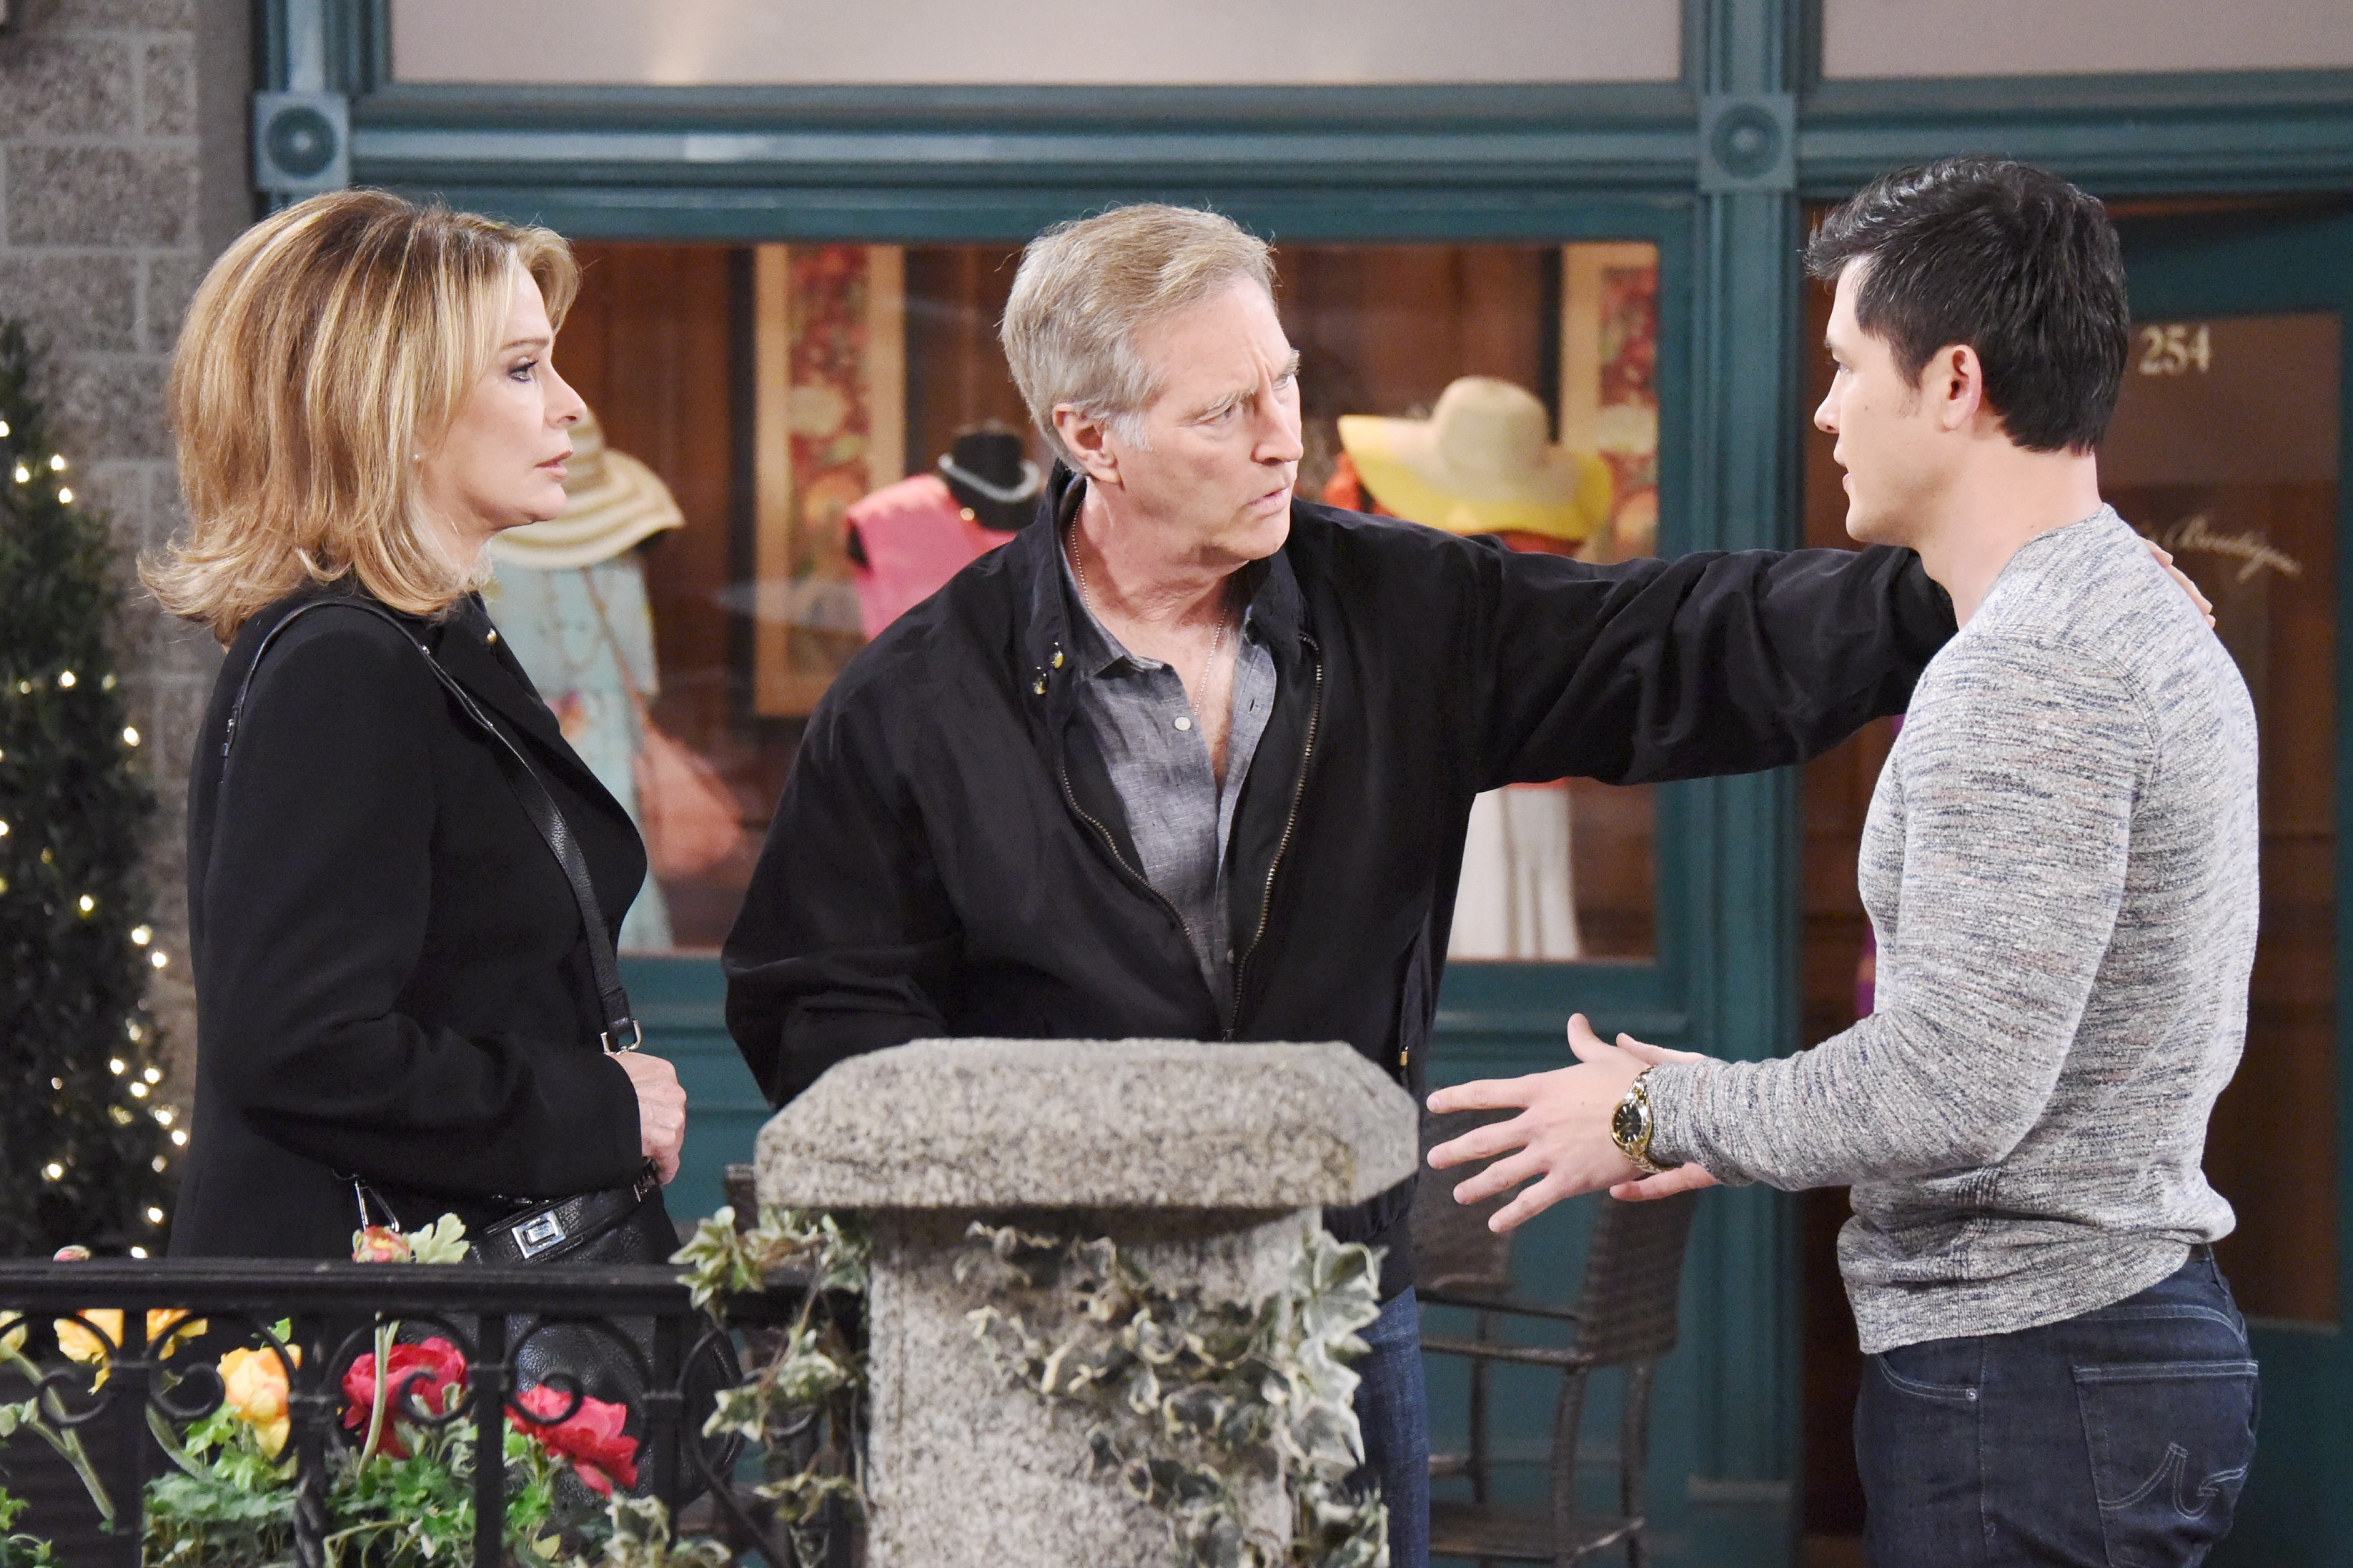 Days Of Our Lives Spoilers: Paul confides in John about his deception.